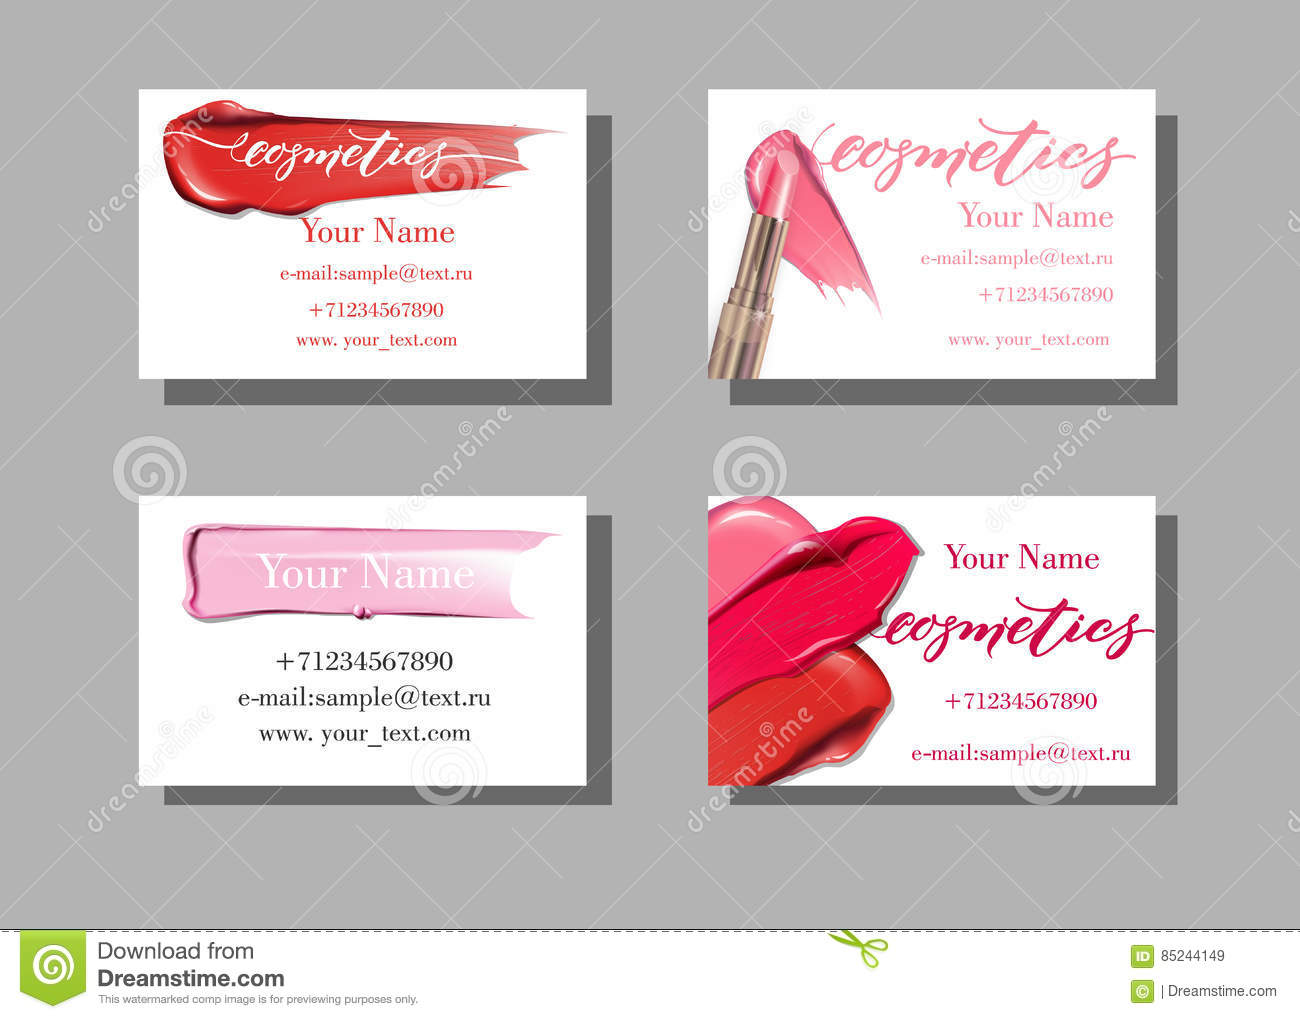 Makeup artist business card vector template with makeup items makeup artist business card vector template with makeup items pattern smears lipstick cheaphphosting Images